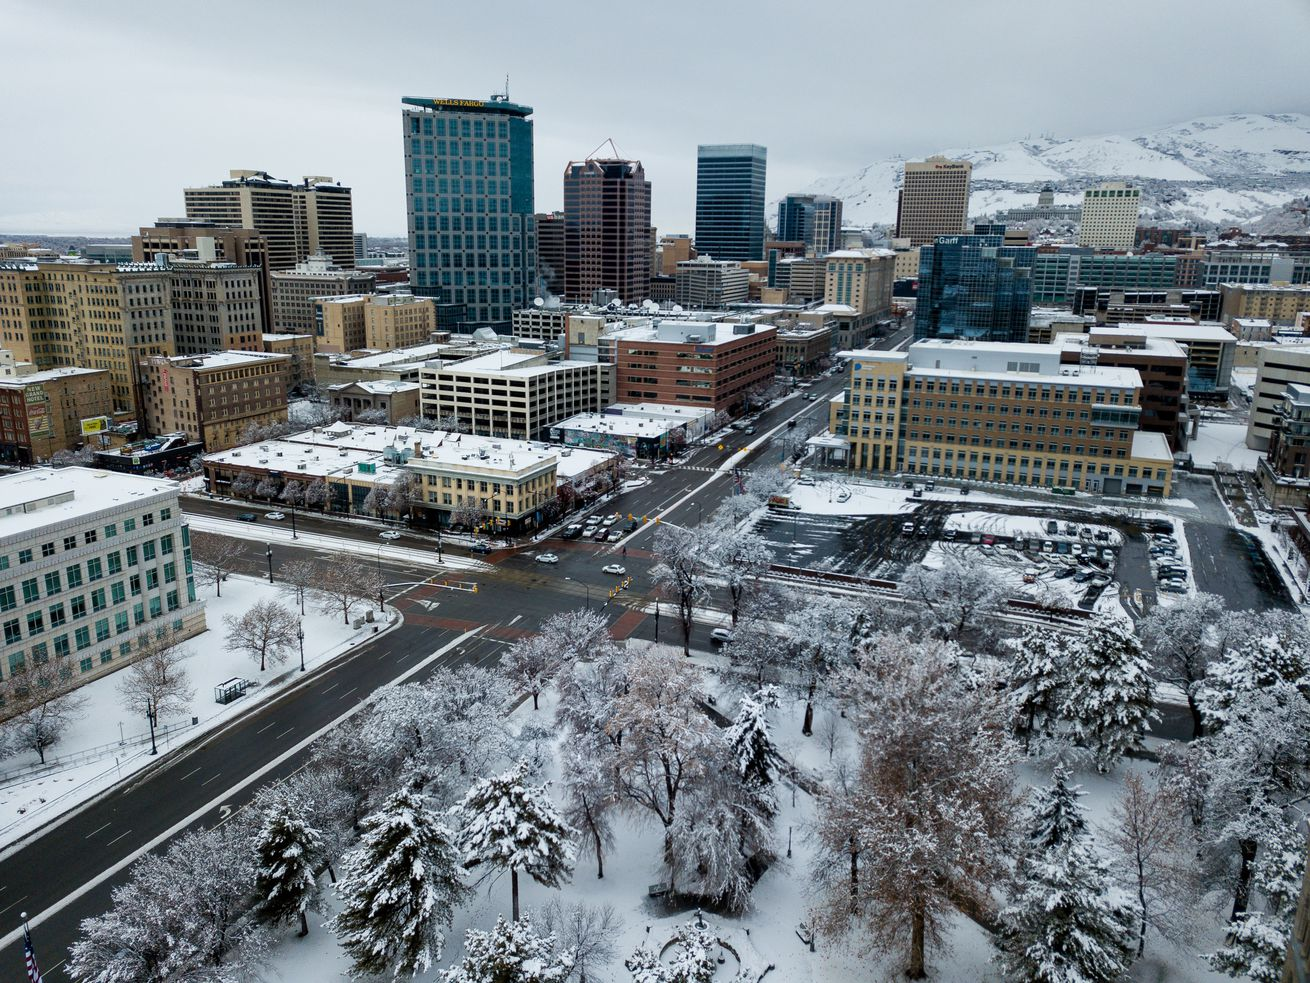 Downtown Salt Lake City is seen during a winter storm on Monday, Jan. 21, 2019.